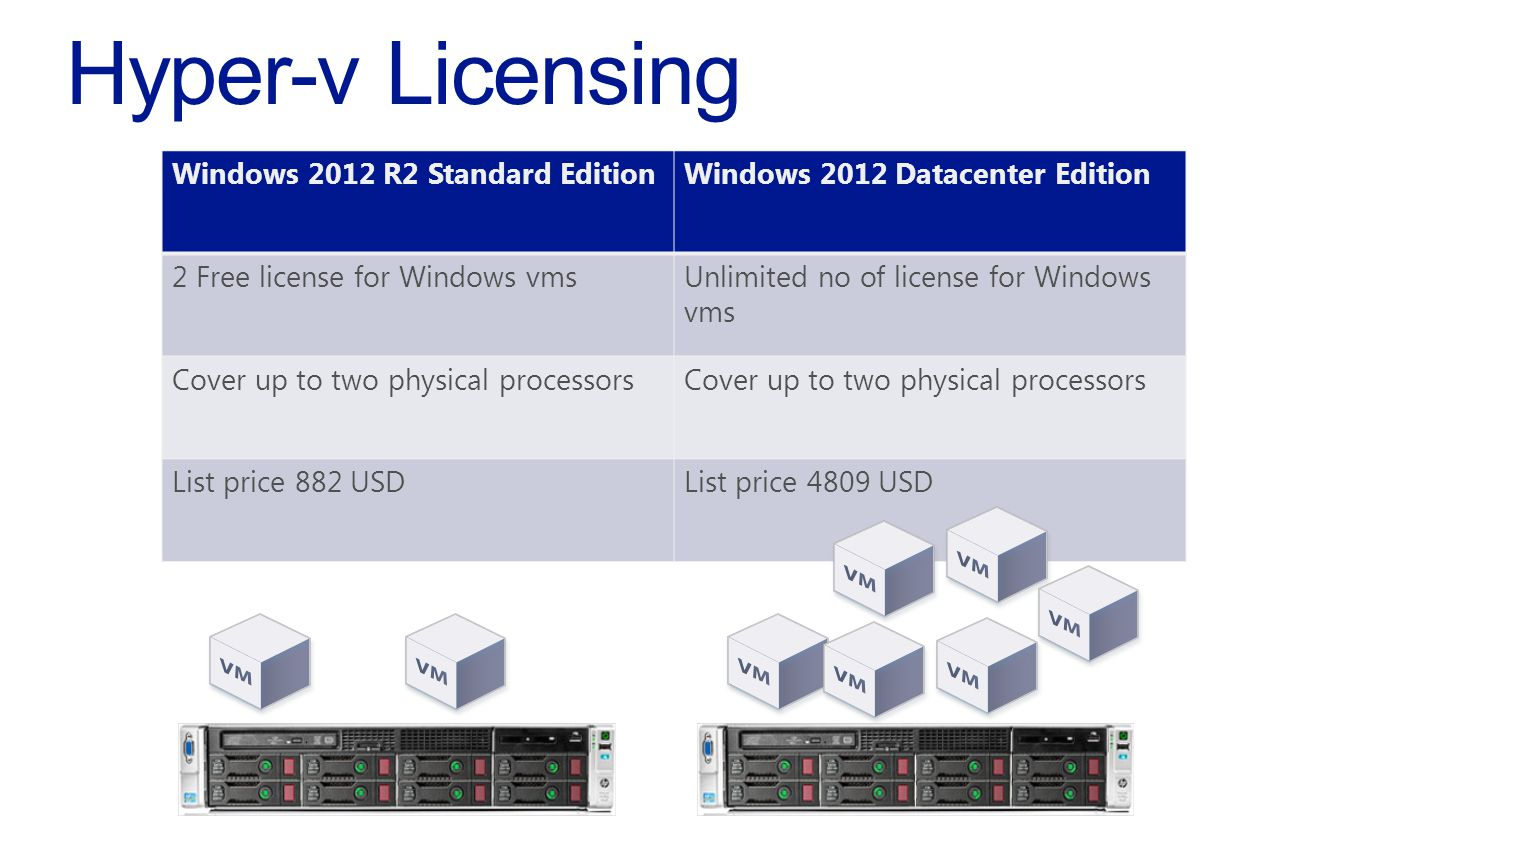 Windows 2012 R2 Standard EditionWindows 2012 Datacenter Edition 2 Free license for Windows vmsUnlimited no of license for Windows vms Cover up to two physical processors List price 882 USDList price 4809 USD